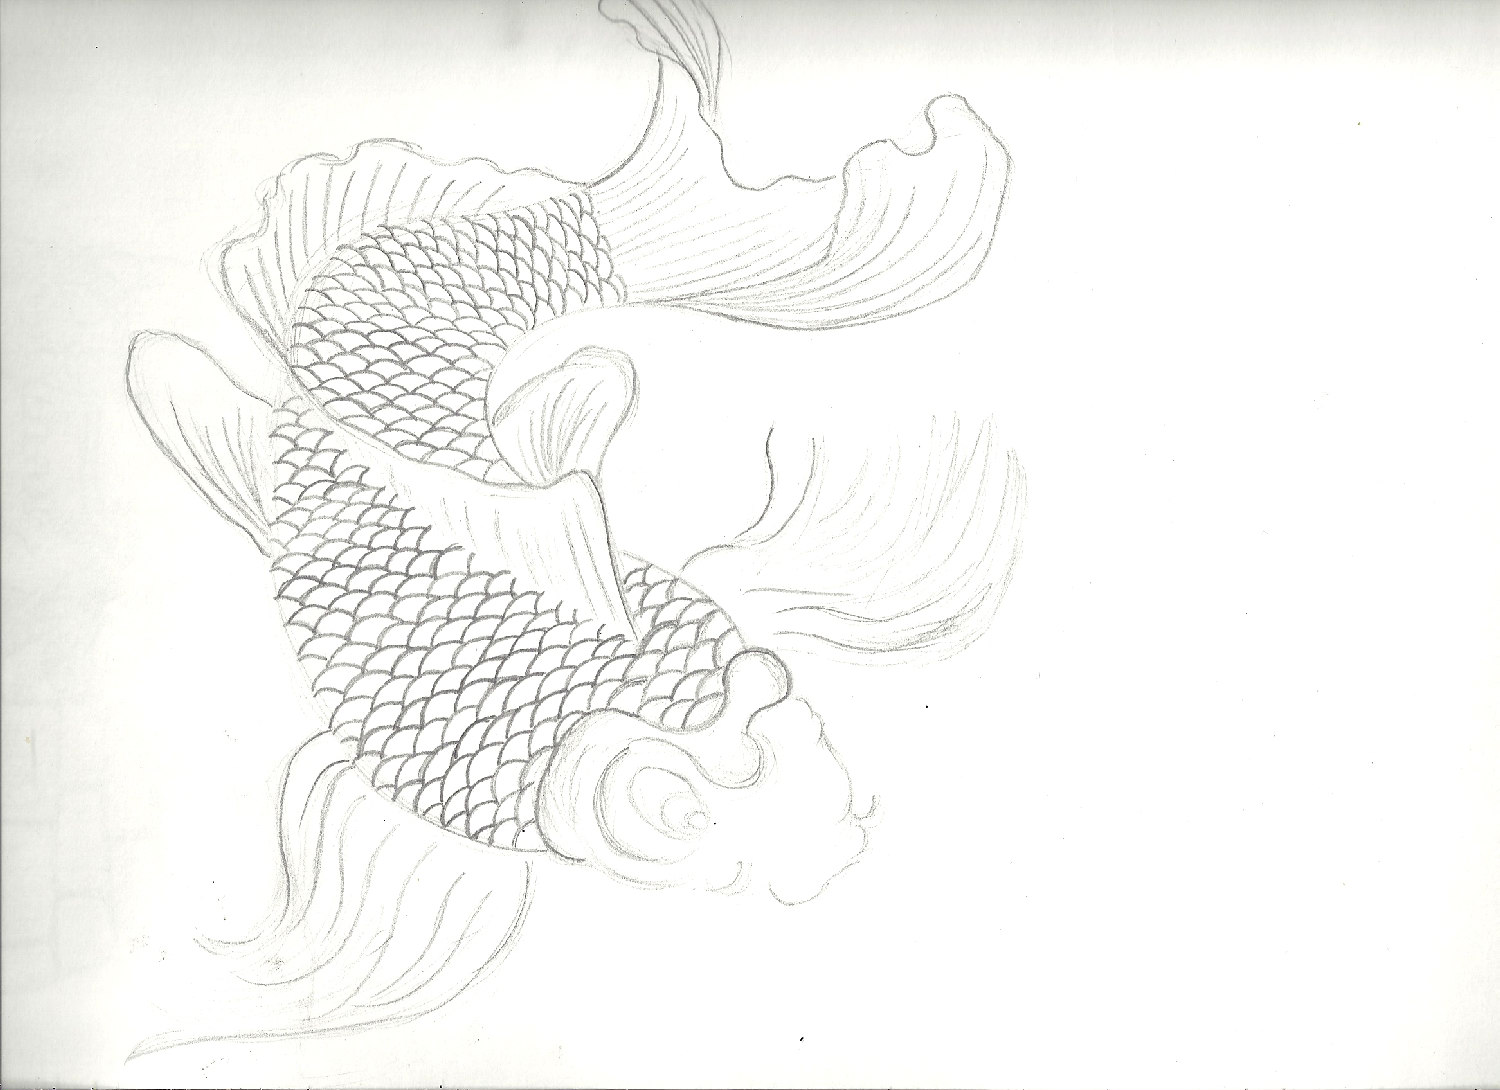 koi fish drawing by keirushii